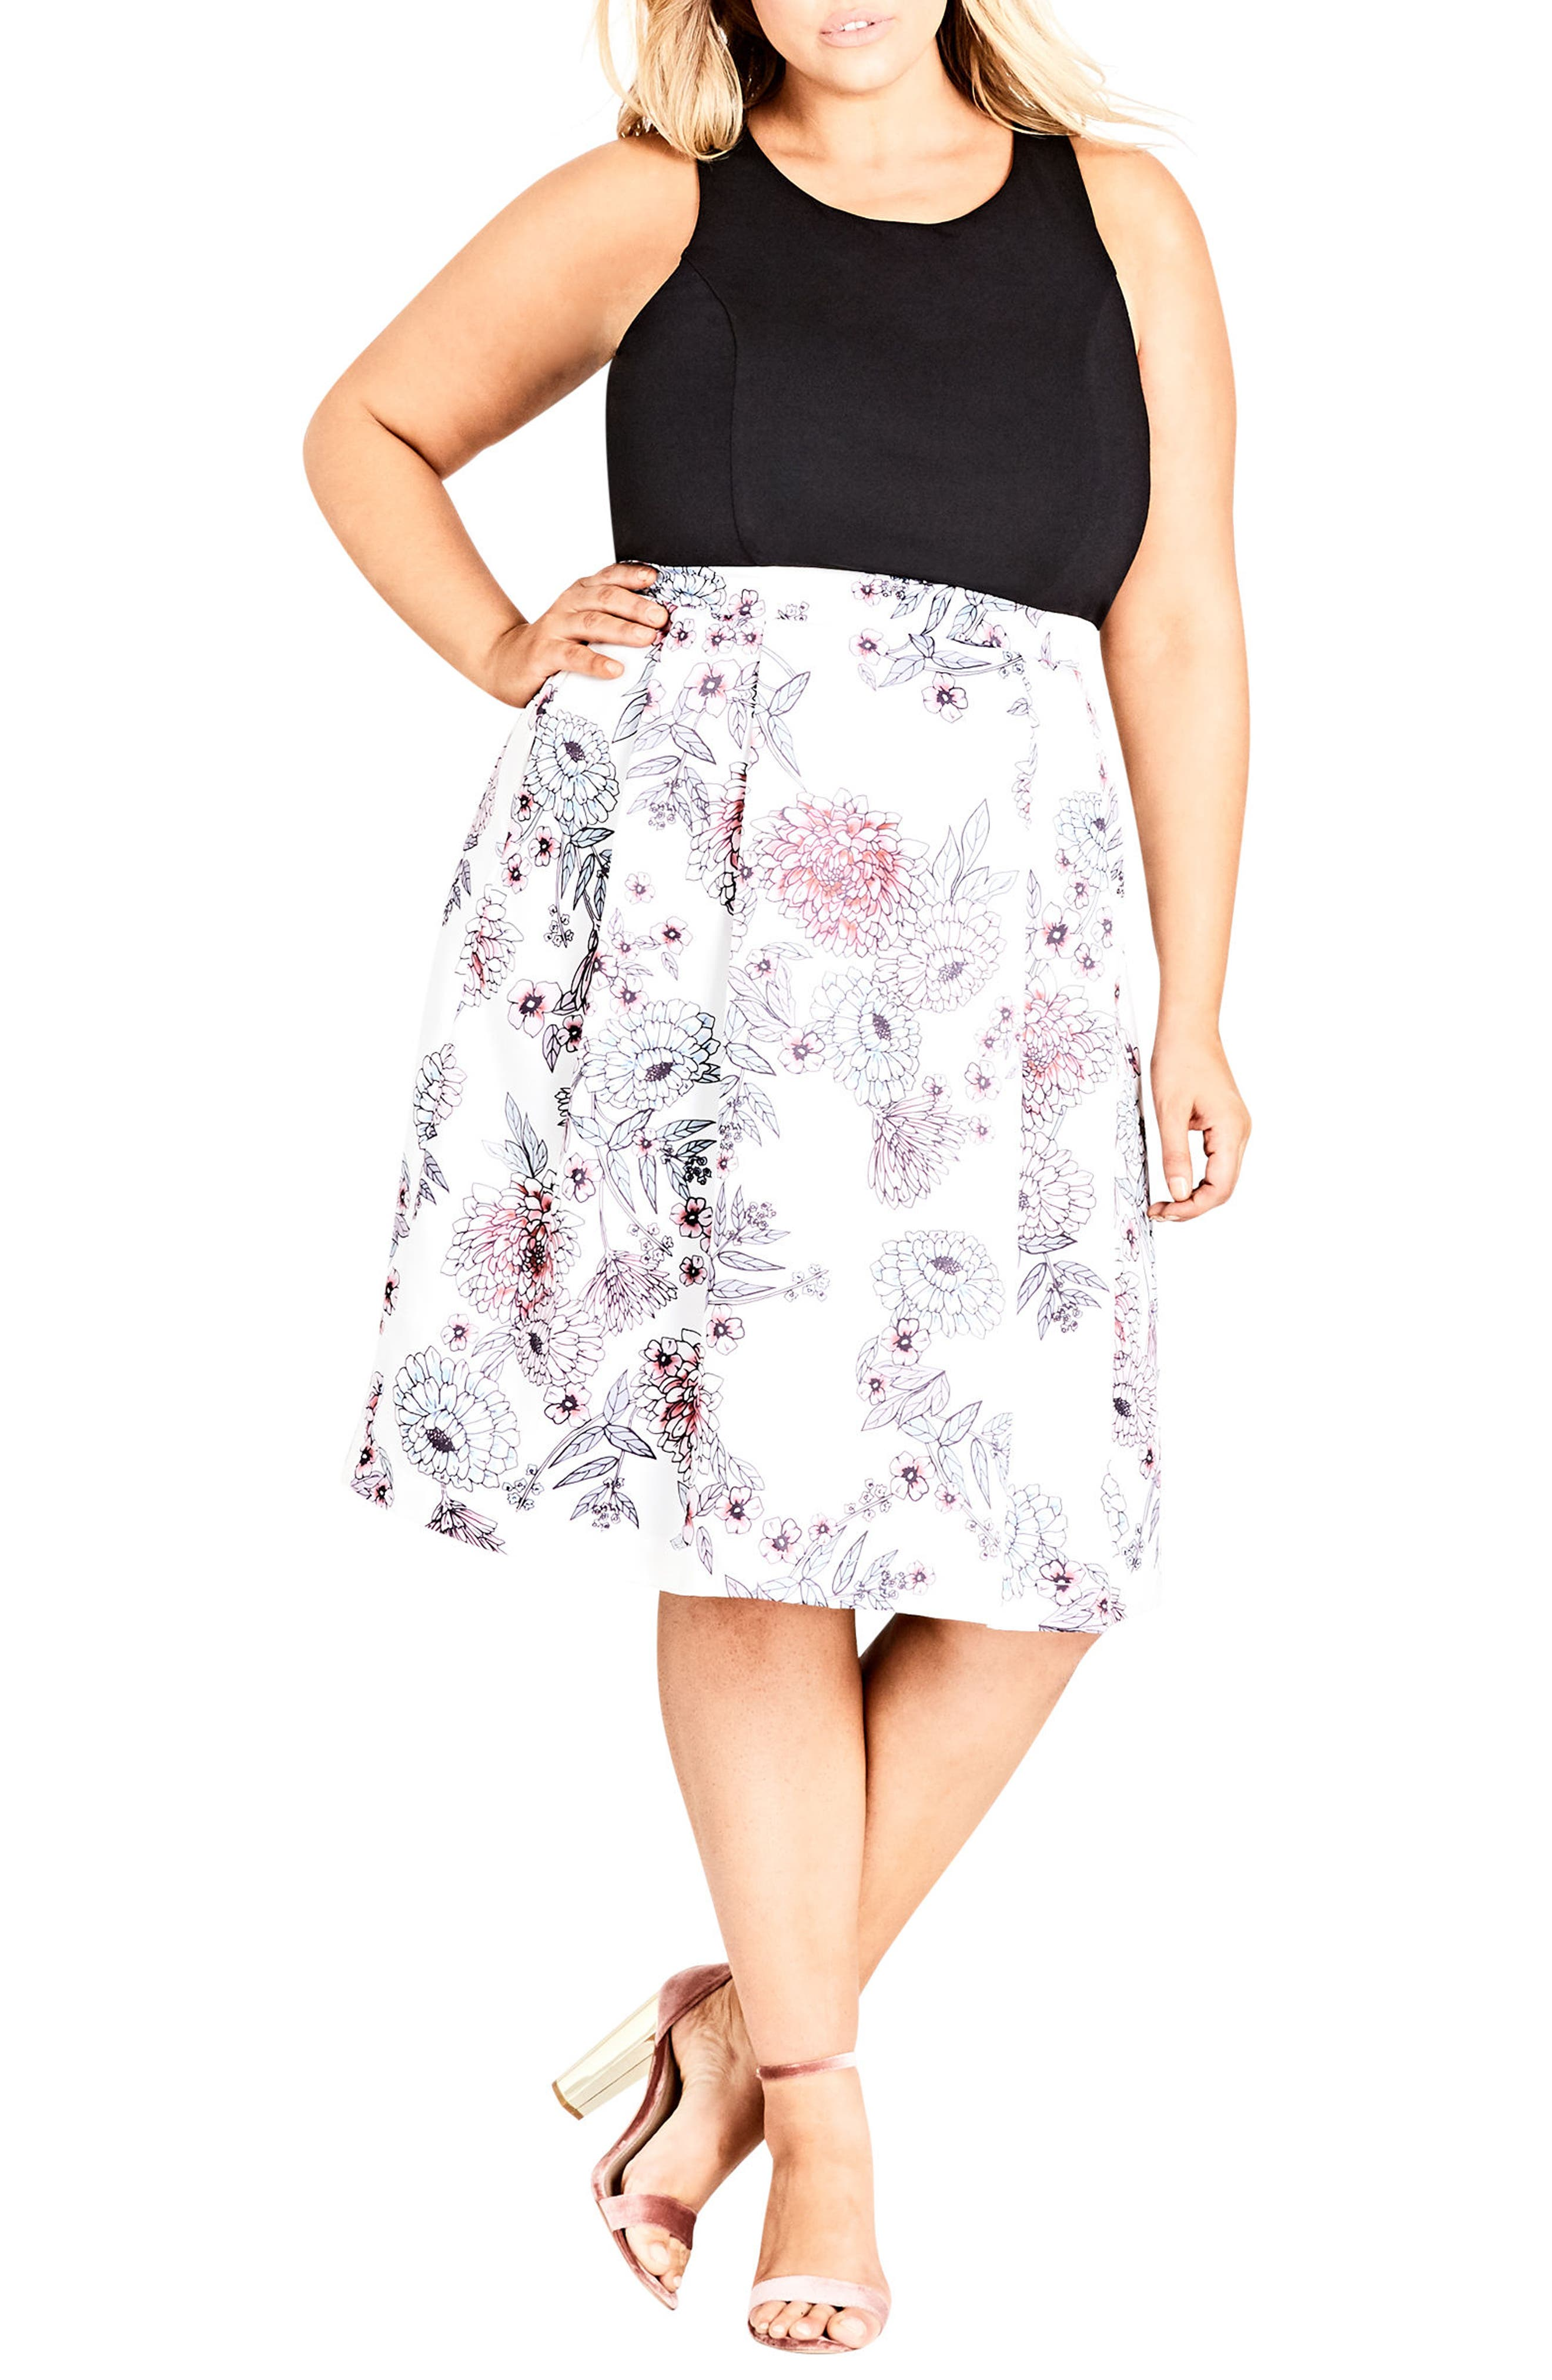 Alternate Image 1 Selected - City Chic Spring Affair Fit & Flare Dress (Plus Size)